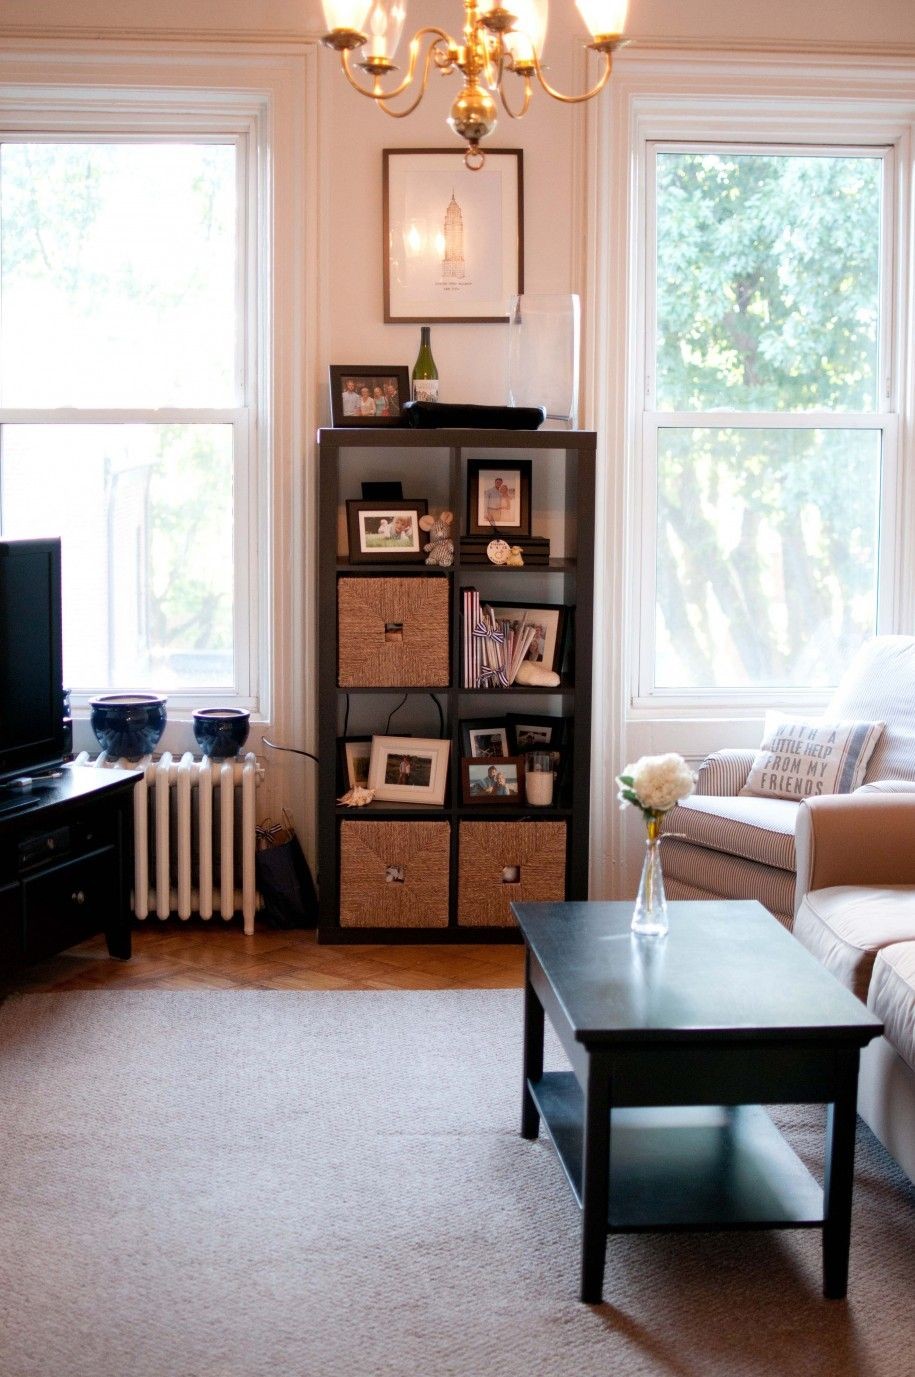 Several Easy Ways To Create Cute College Apartment Decorating Ideas For Small